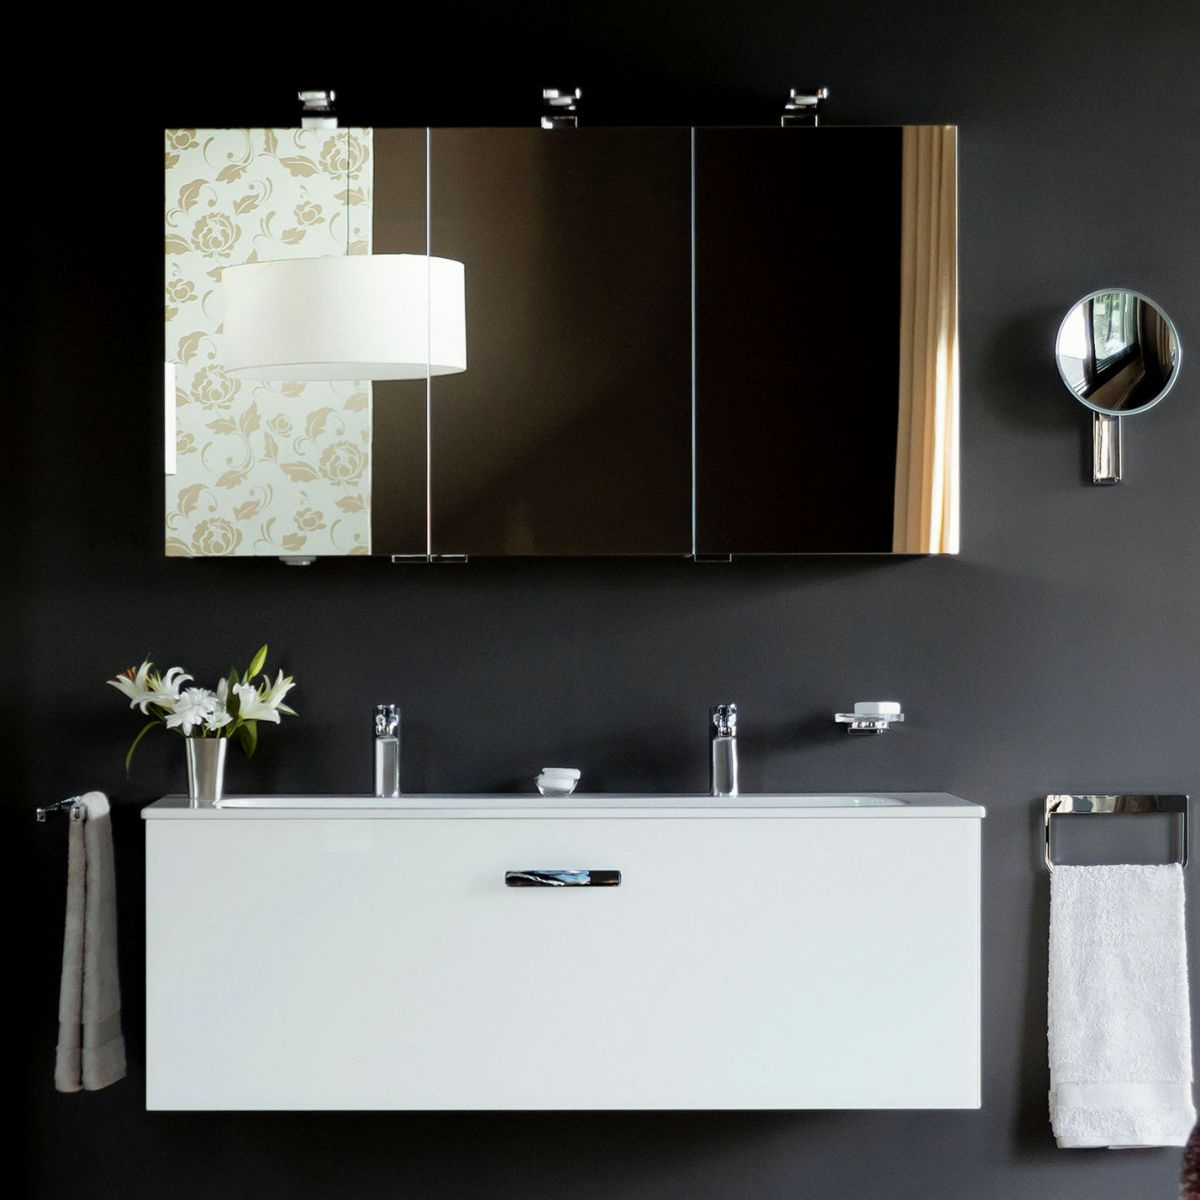 Bathroom Wall Mirror Cabinets With Regard To Fashionable Bathroom Cabinets, Also Available With Mirrors & Lights : Uk Bathrooms (View 13 of 20)